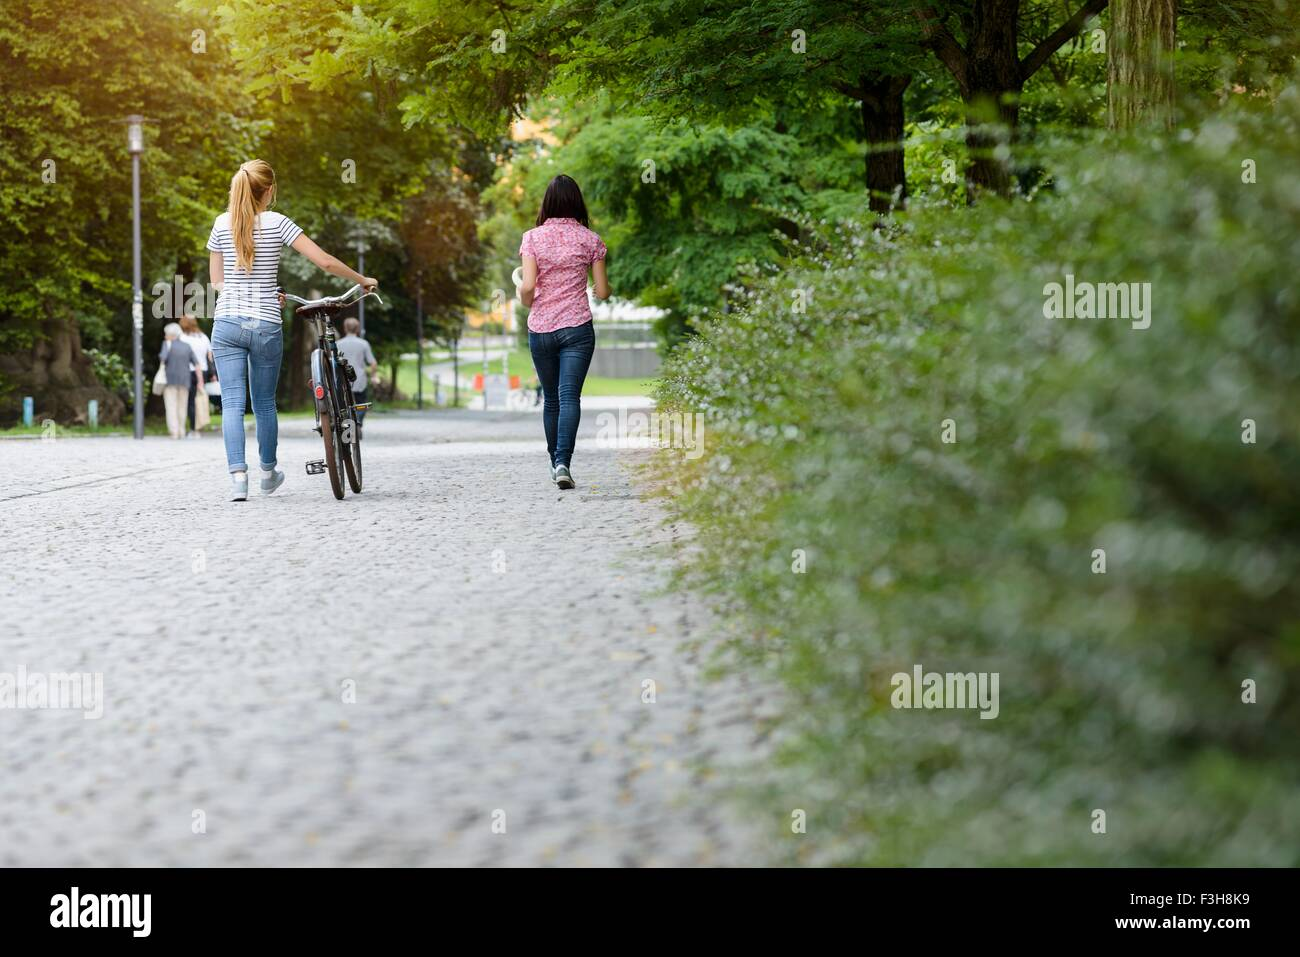 Full length rear view of women walking with bicycle - Stock Image